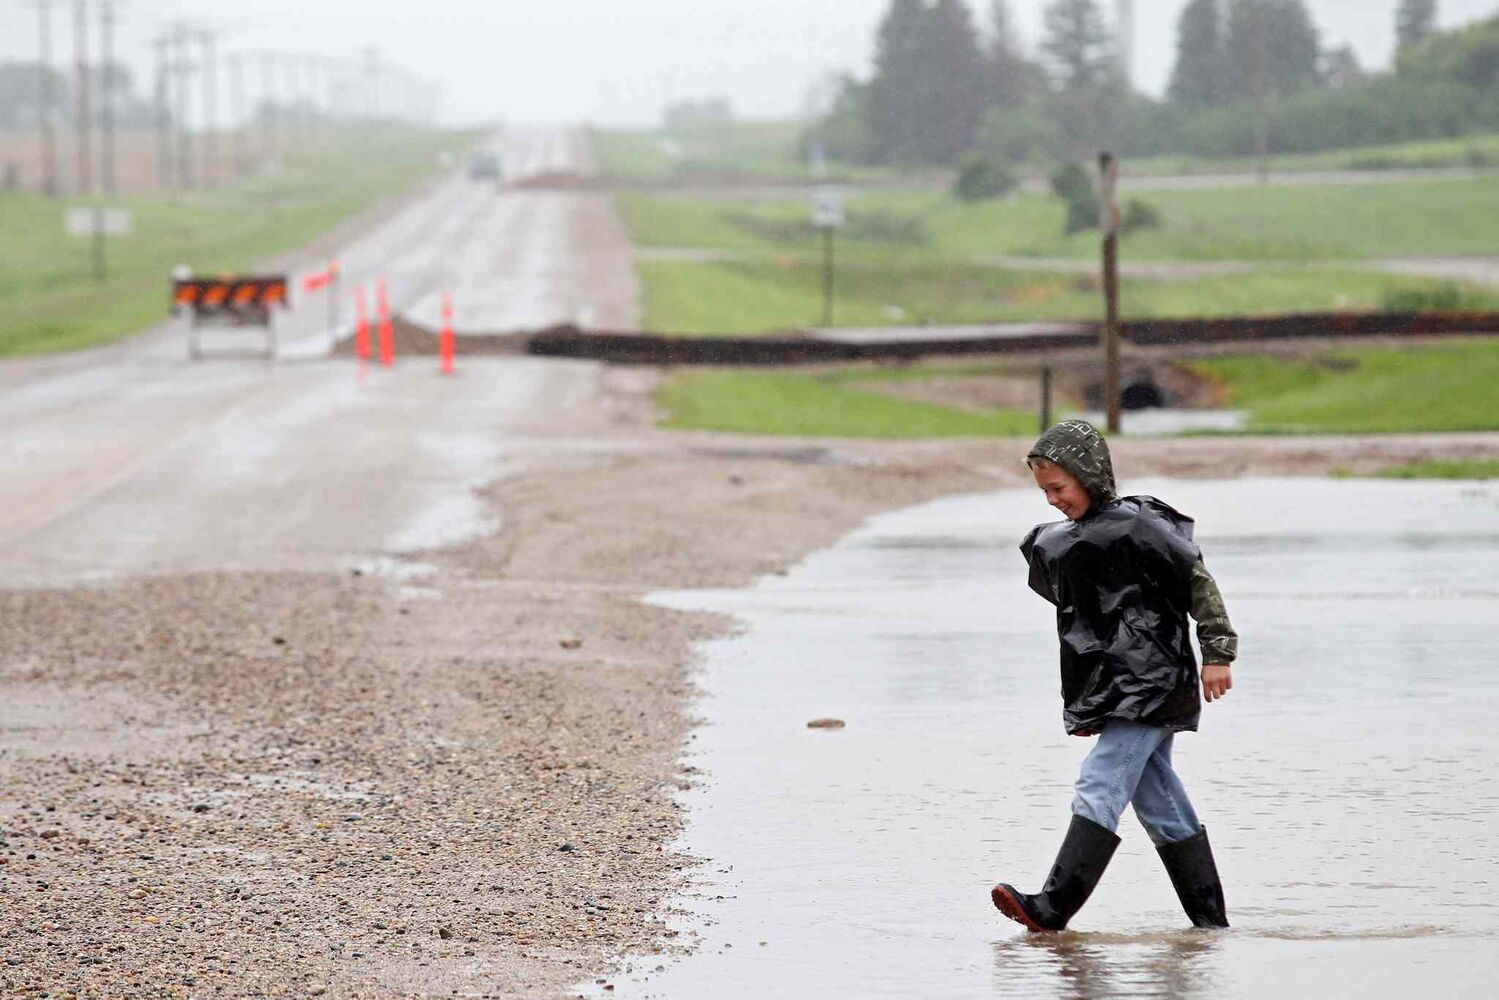 A young boy plays in the flood water adjacent to Highway 256 in the village of Cromer. (Tim Smith / Brandon Sun)